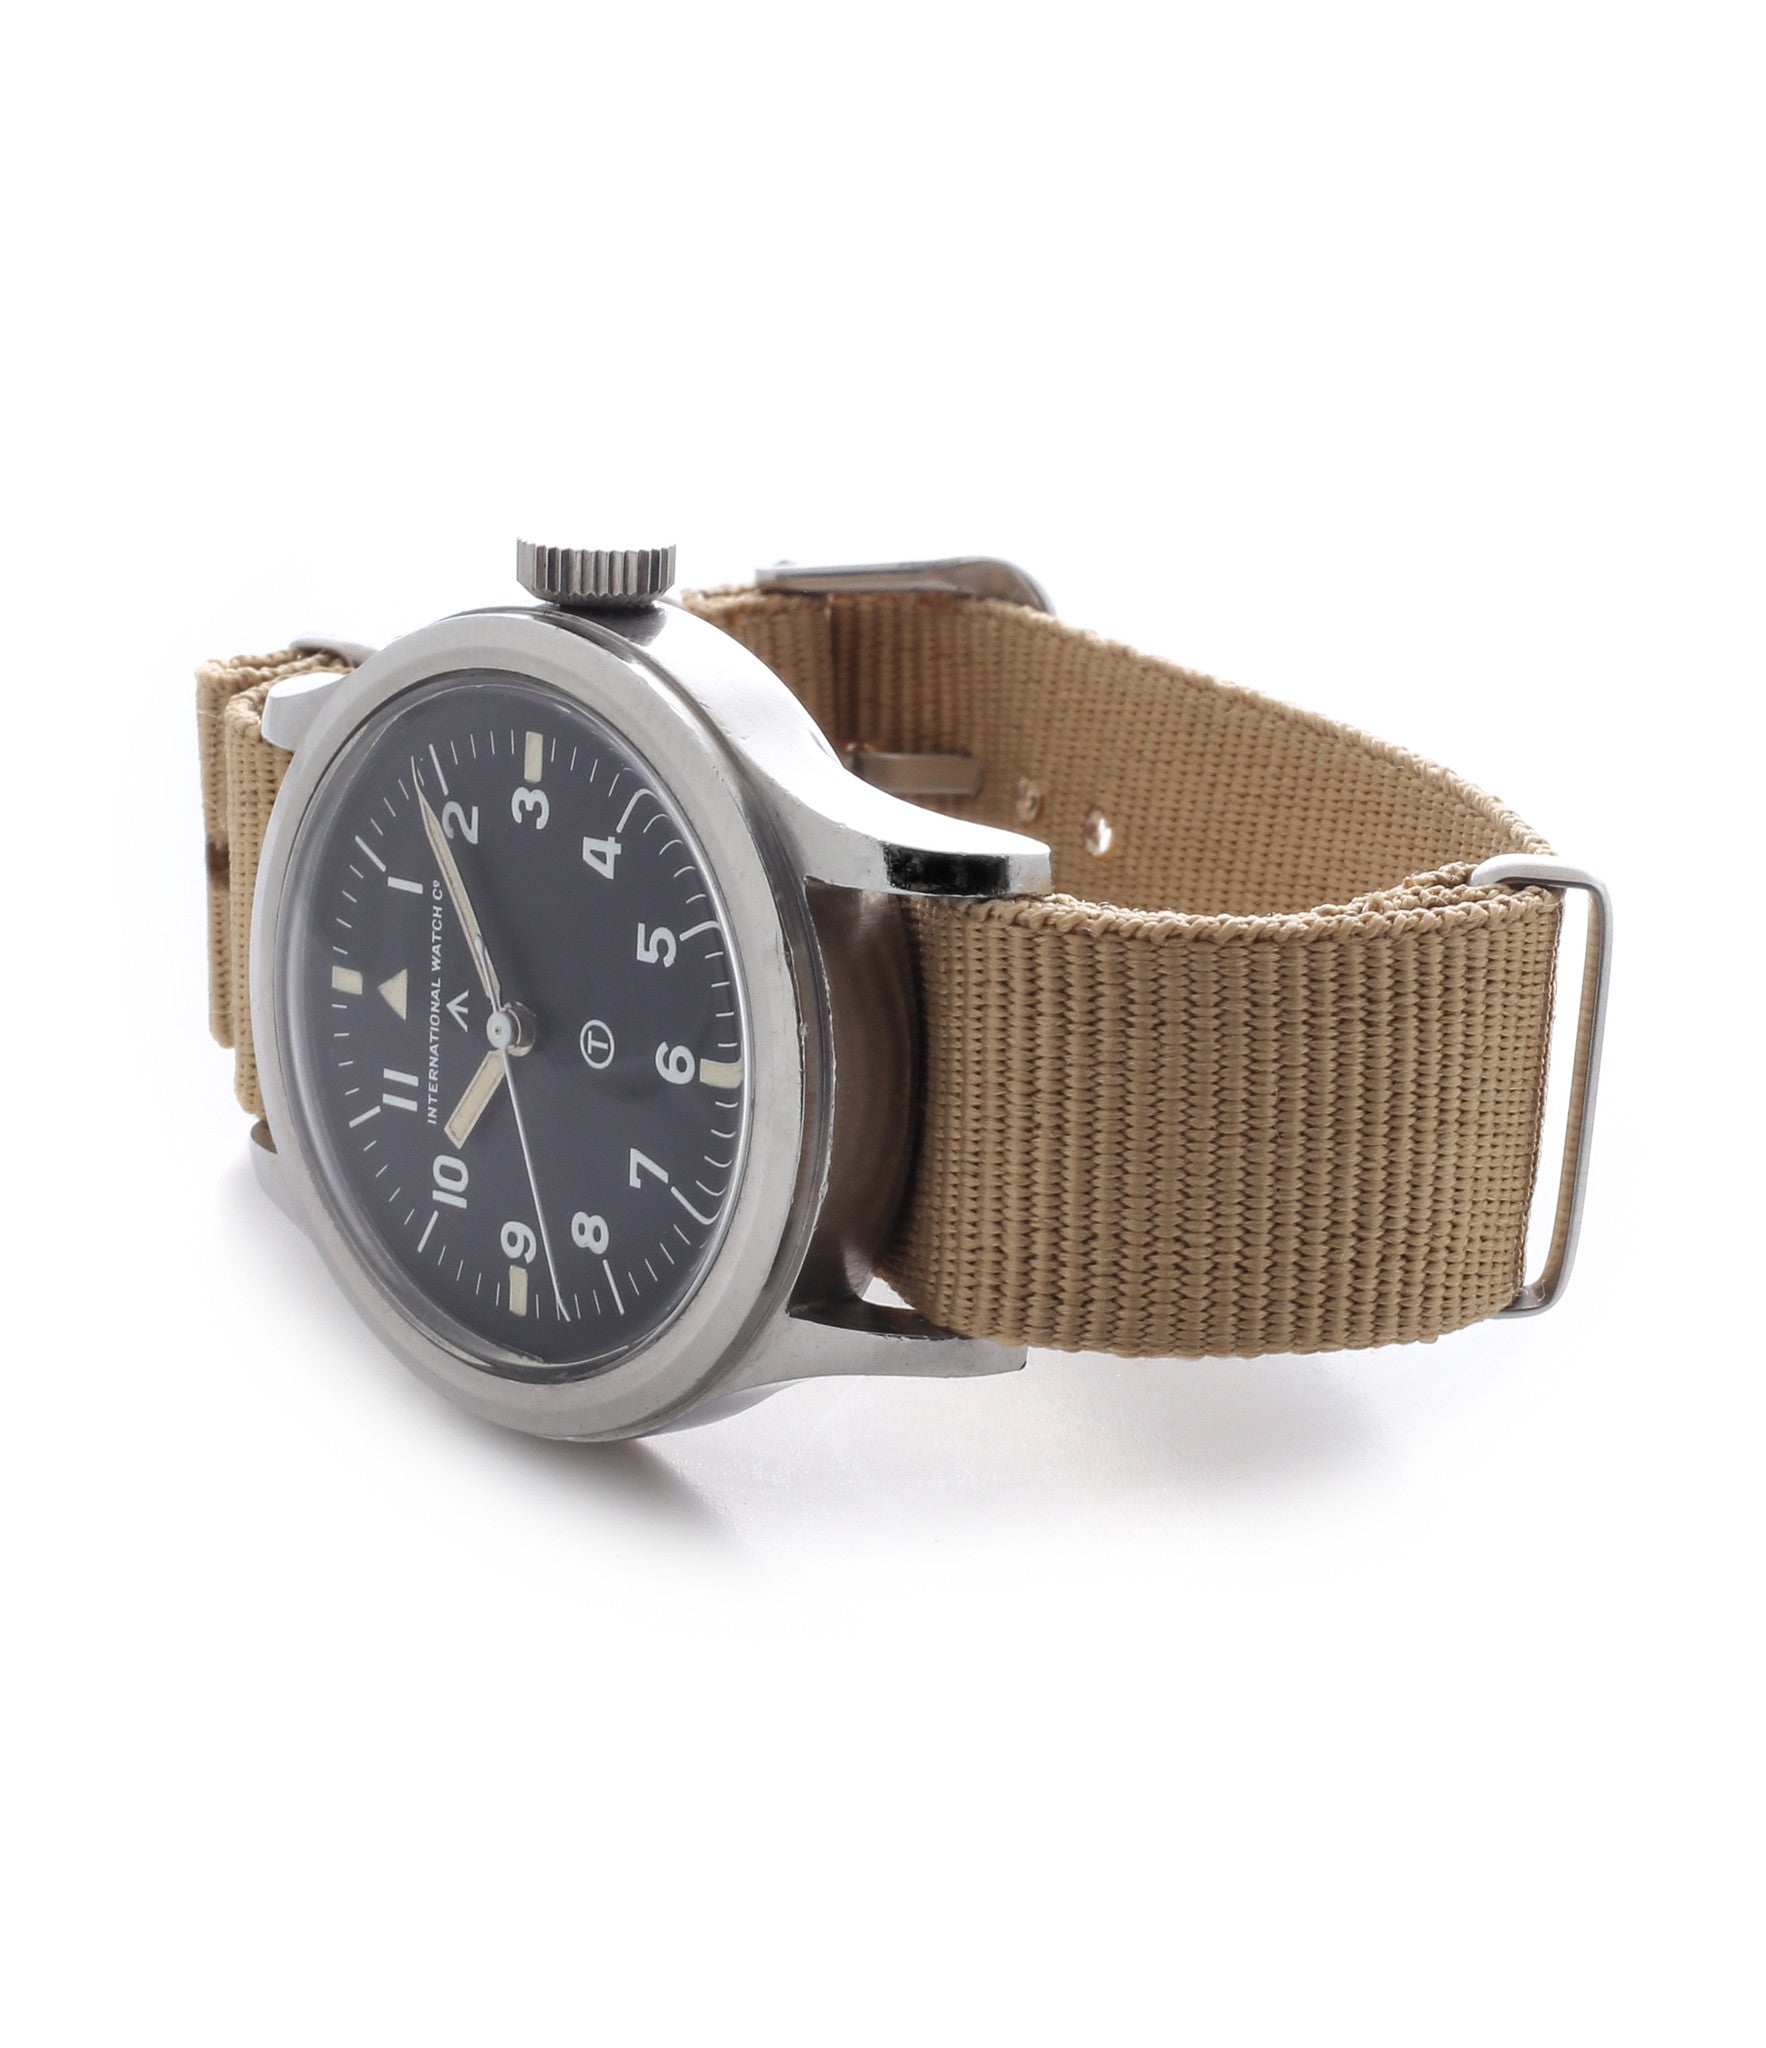 buy IWC Mark XI 6B/346 British RAF military pilot watch Cal. 89 manual-winding movement unrestored hooked 7 dial for sale online WATCH XCHANGE London with authenticity guaranteed